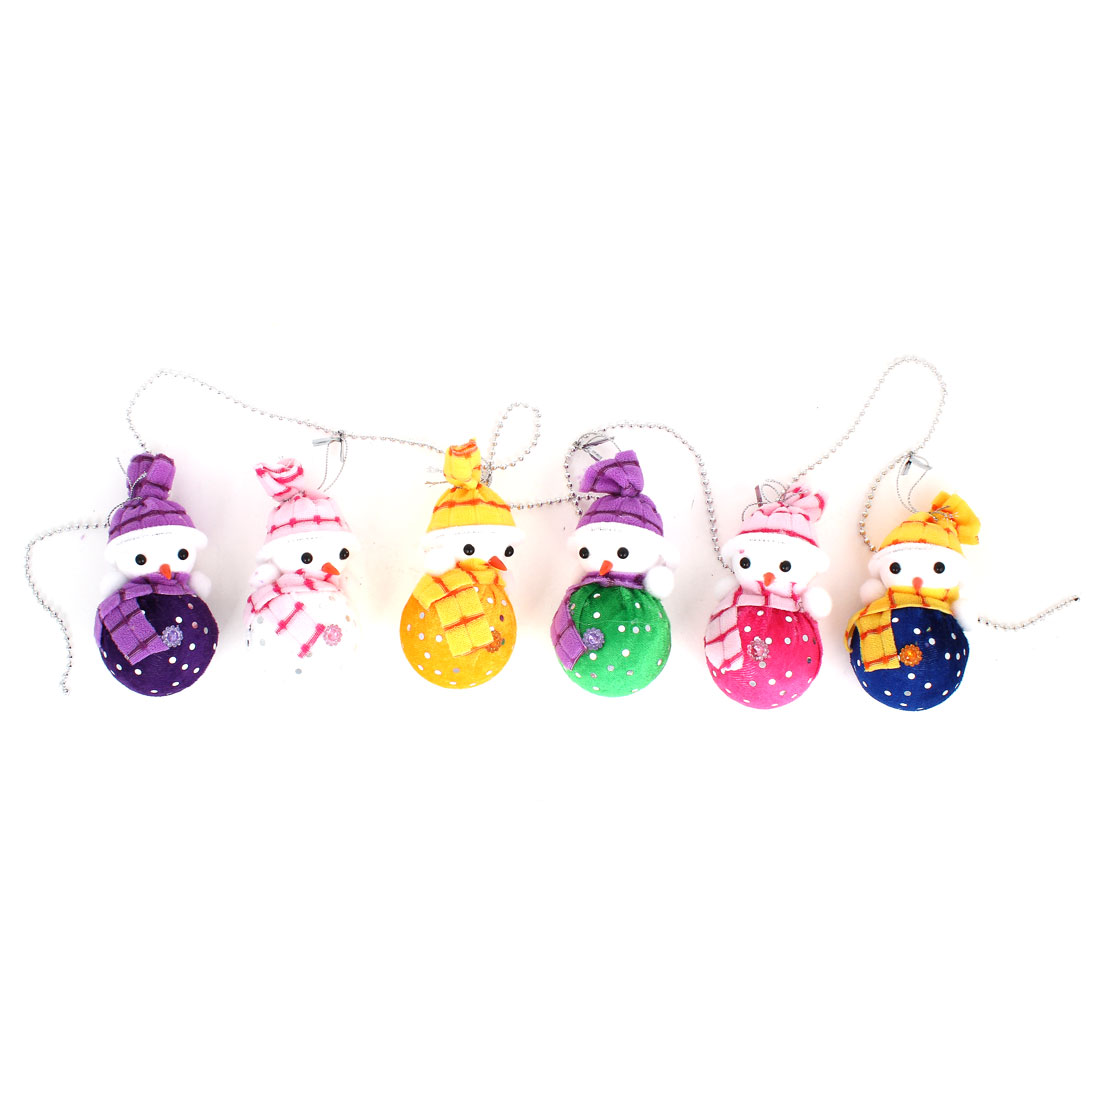 1.3Meters Plastic Beads Linking Xmas Snowman Pendant 6 in 1 Set for Door Christmas Tree Hanging Decor